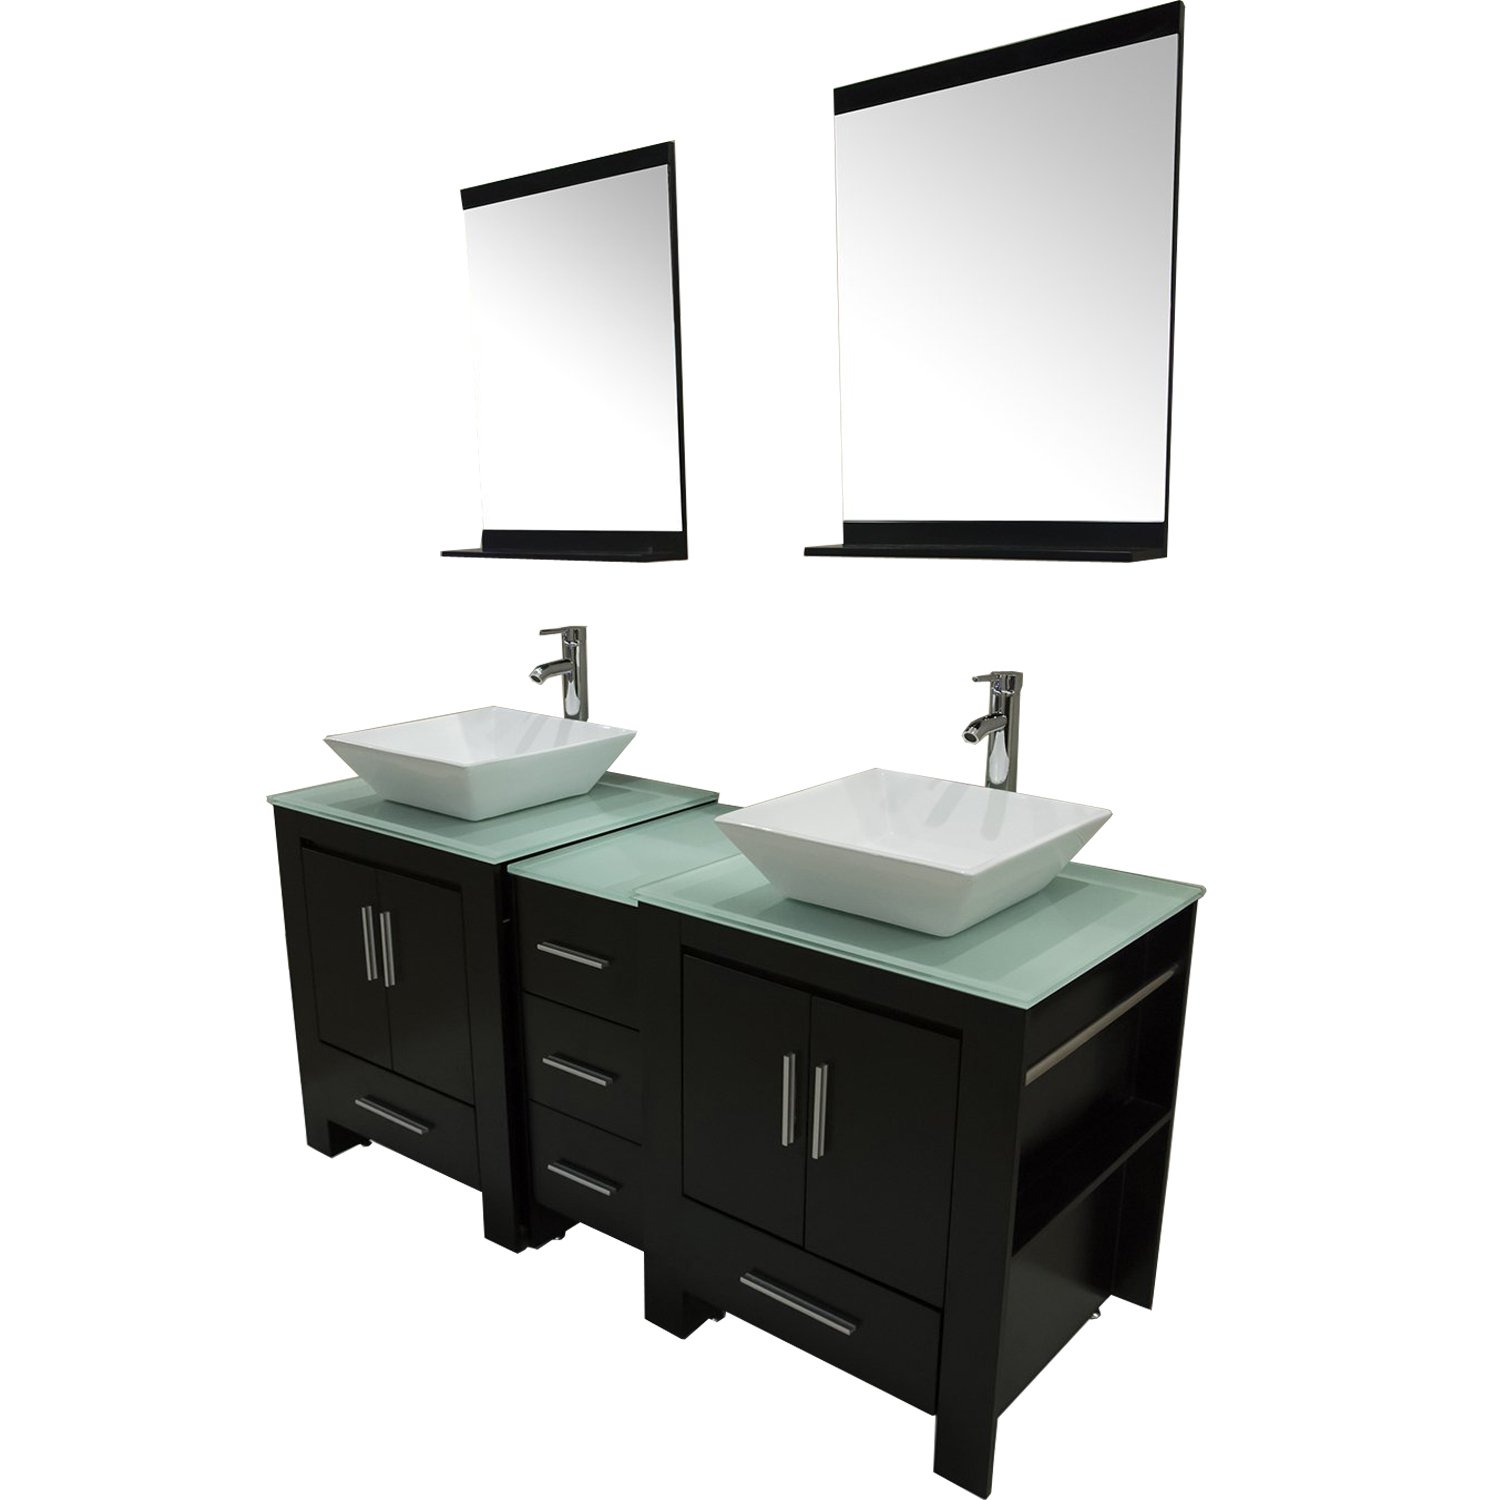 Walcut Luxury 60'' Modern Double Ceramic Sink Solid Wood Bathroom Vanity Cabinet With Mirror And Tempered Glass Table Board by WALCUT (Image #2)